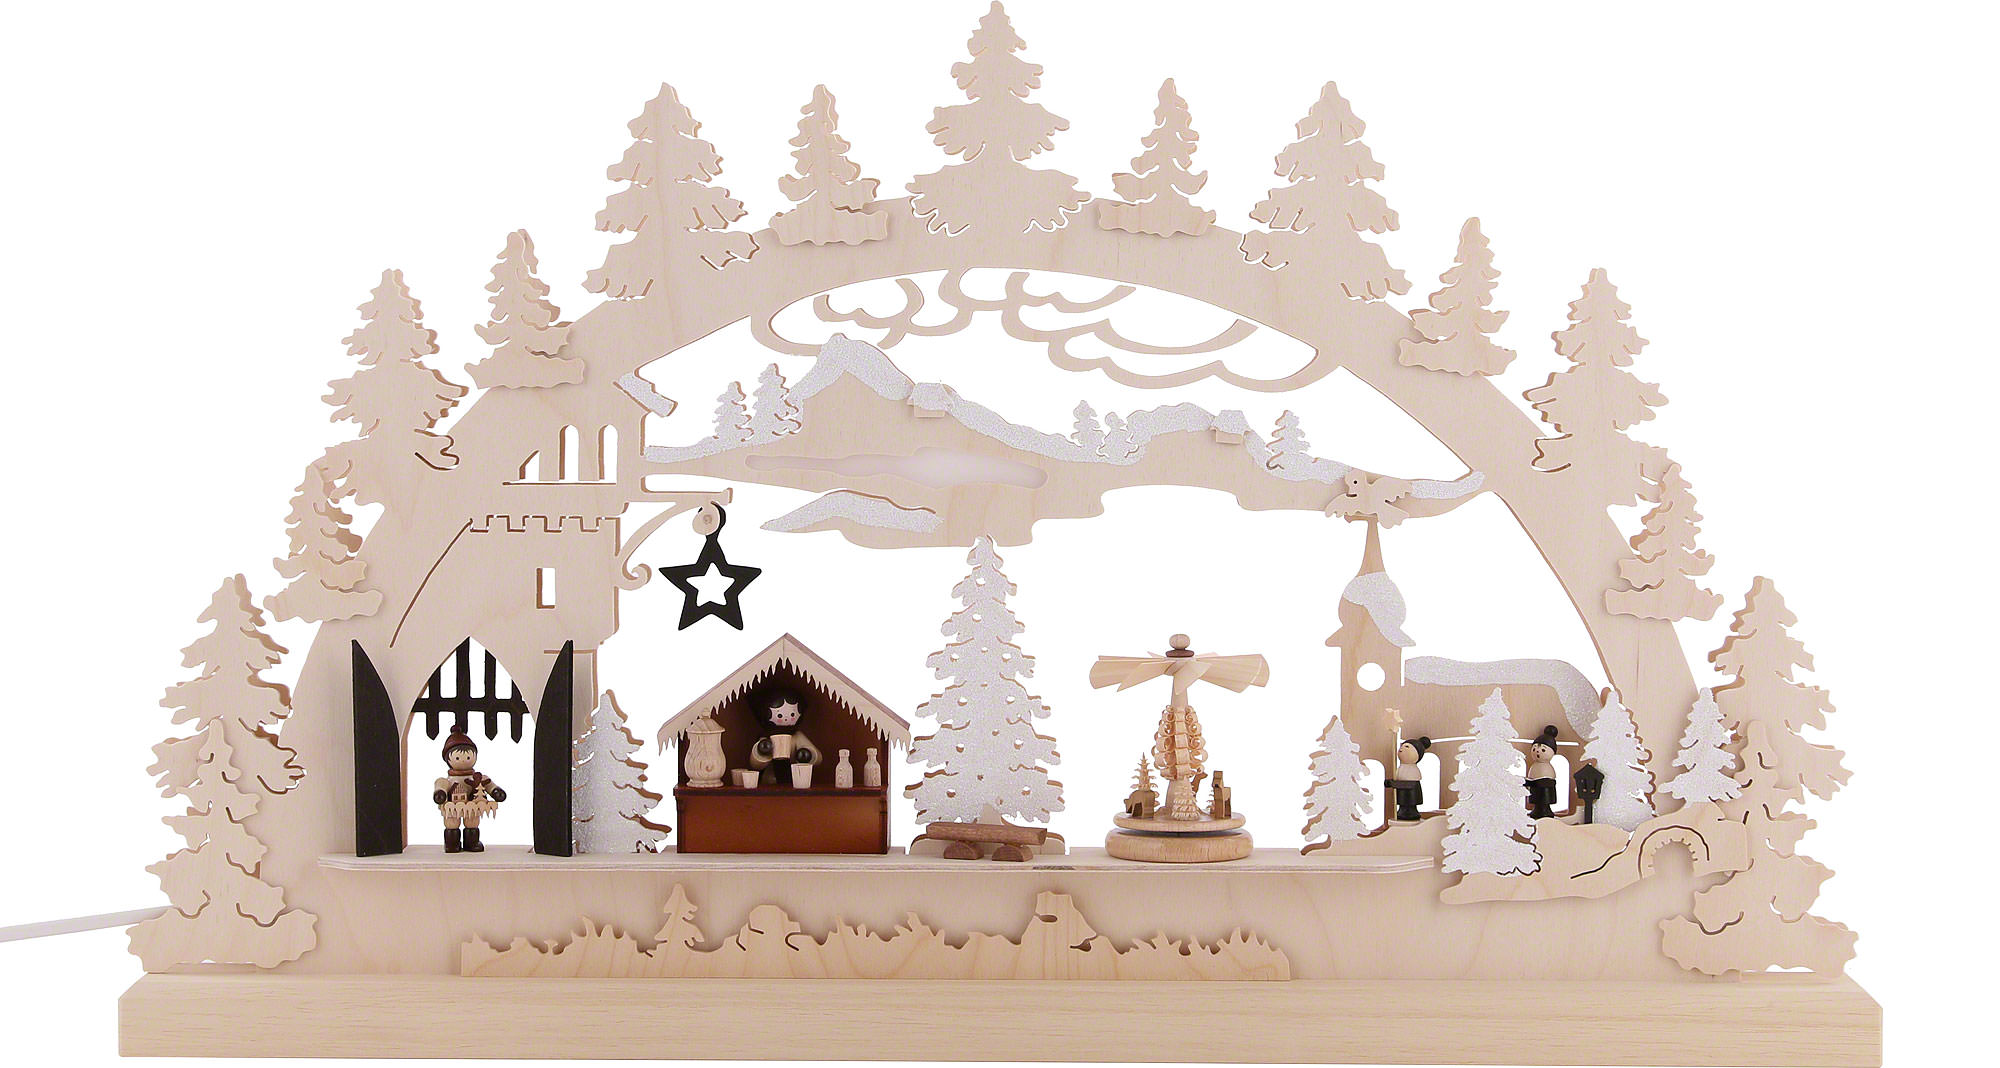 Candle arch village christmas 62 37 5 5 cm 24 14 2in for Arch candle christmas decoration